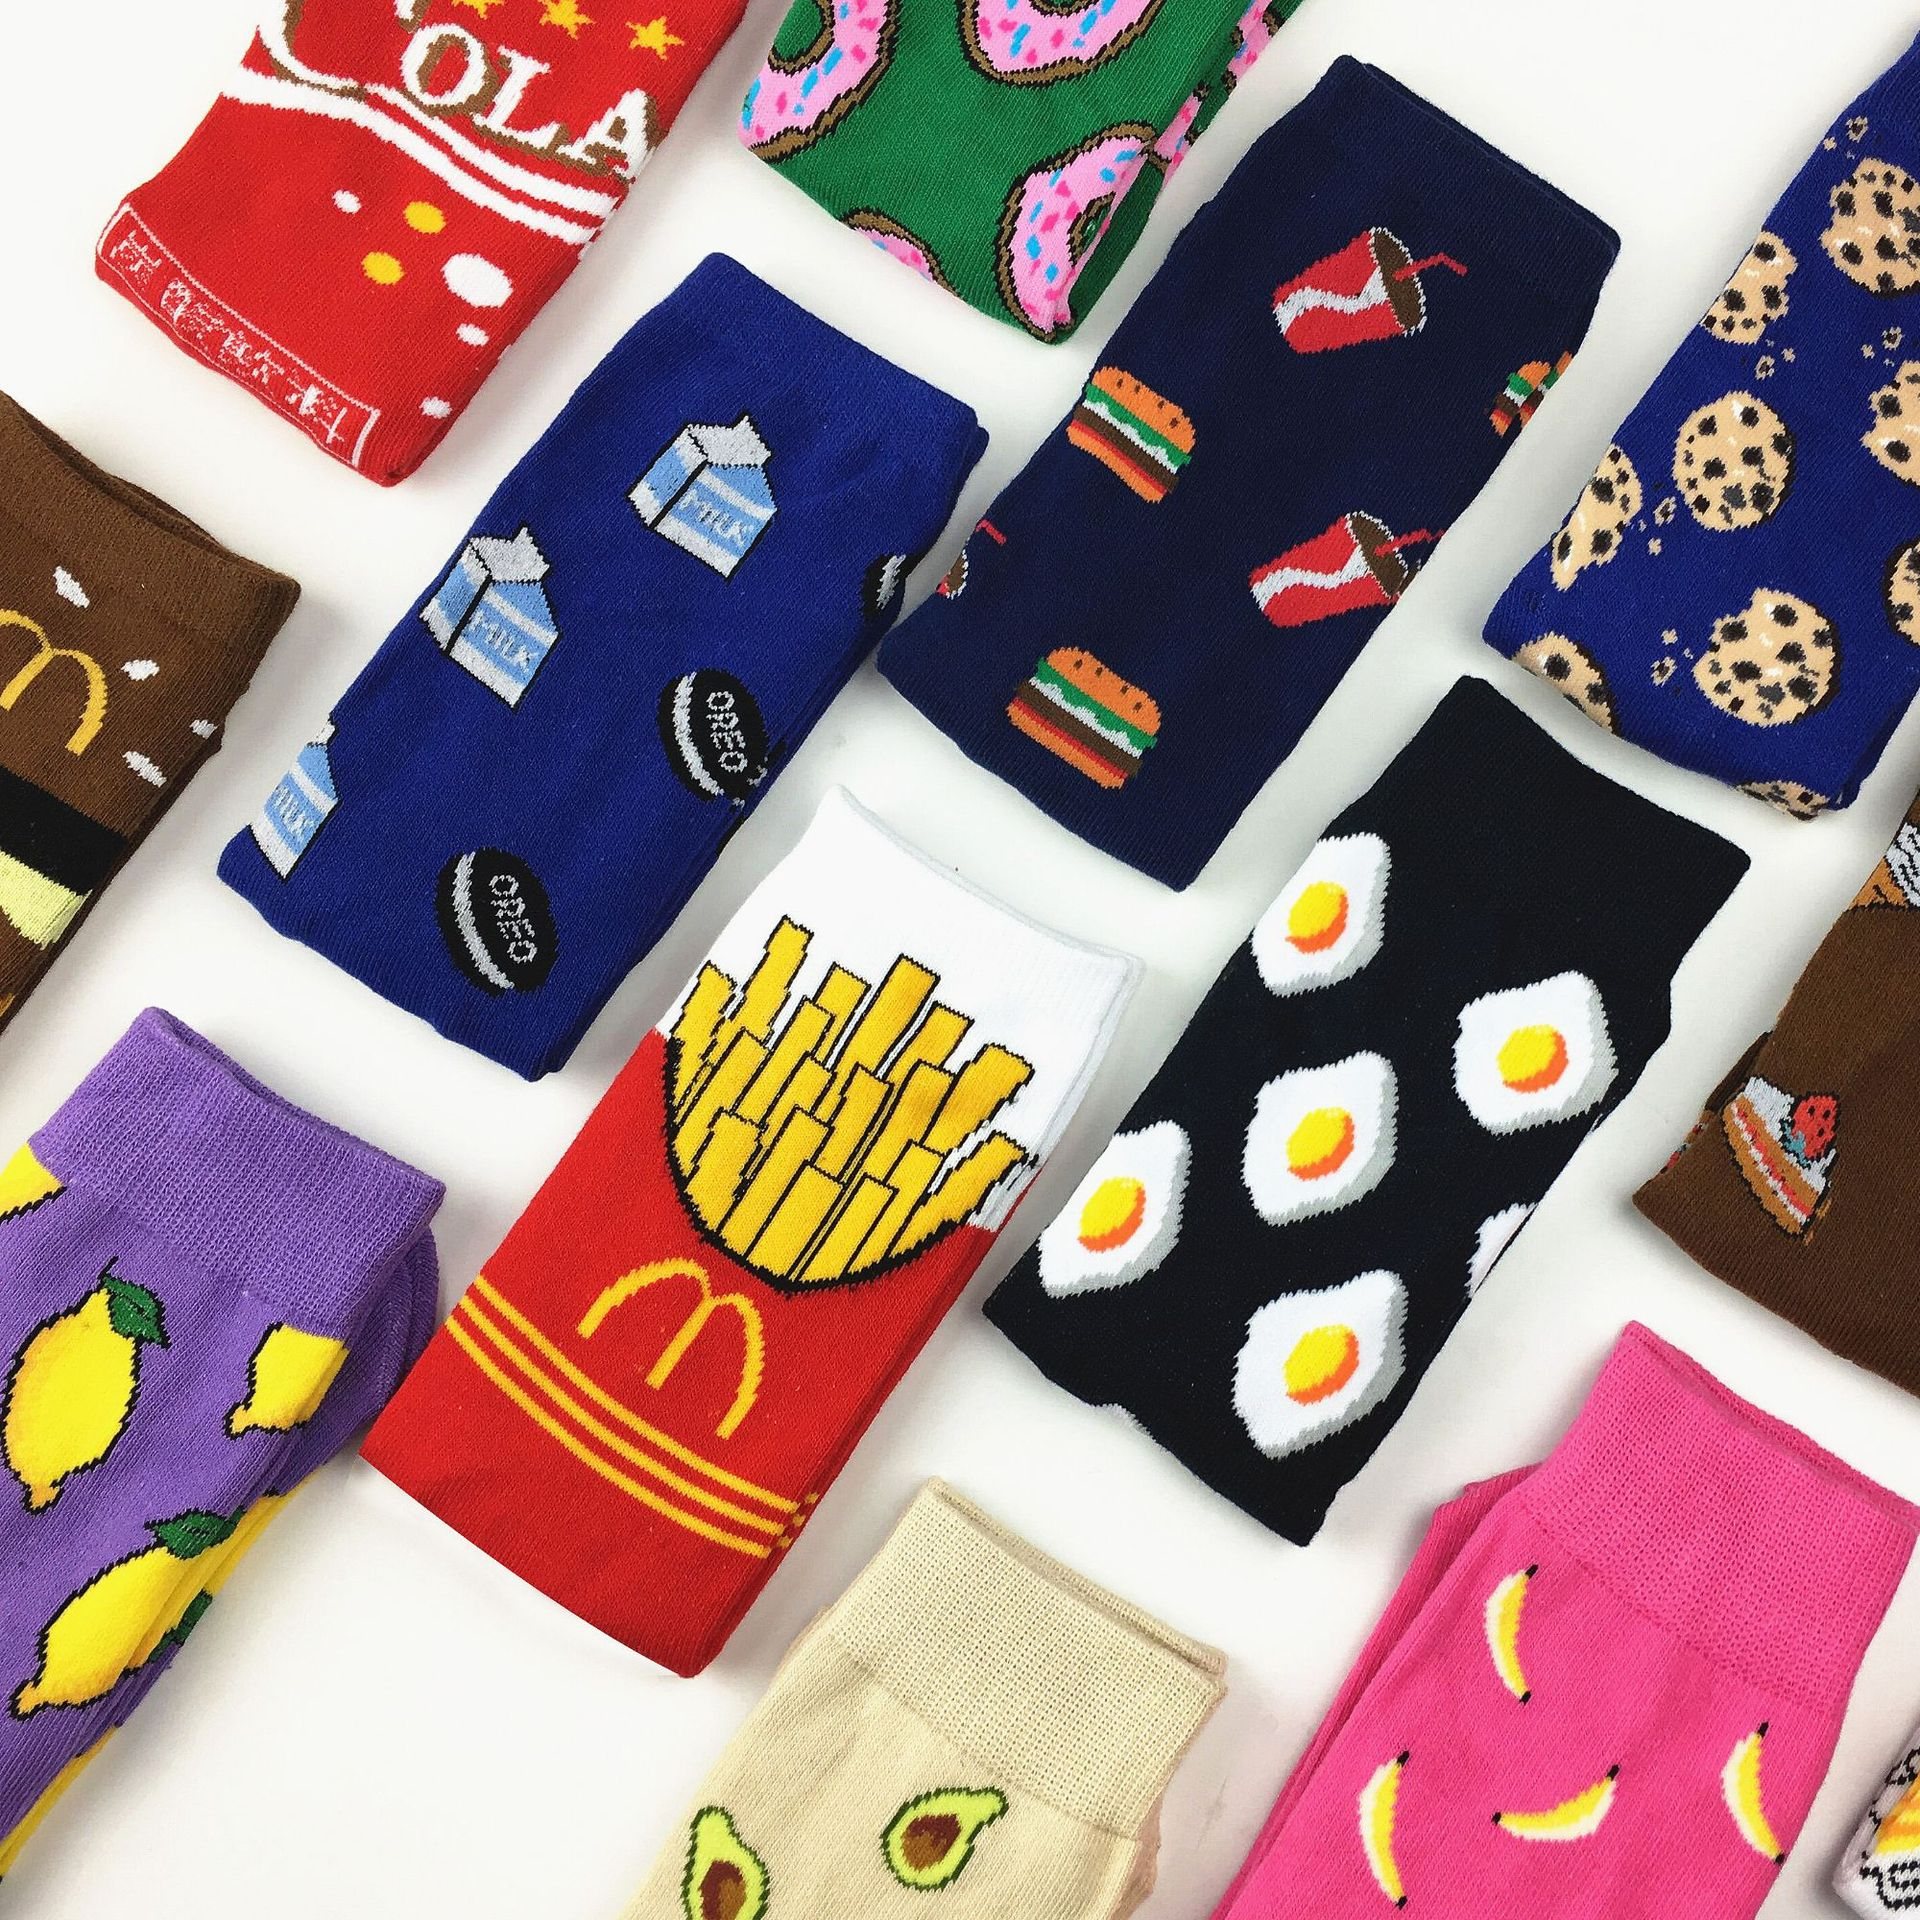 Cute Women Socks Funny Cartoon Fruits Banana Avocado Lemon Egg Cookie Donuts Food Happy Colorful Novelty Skateboard Girl Socks